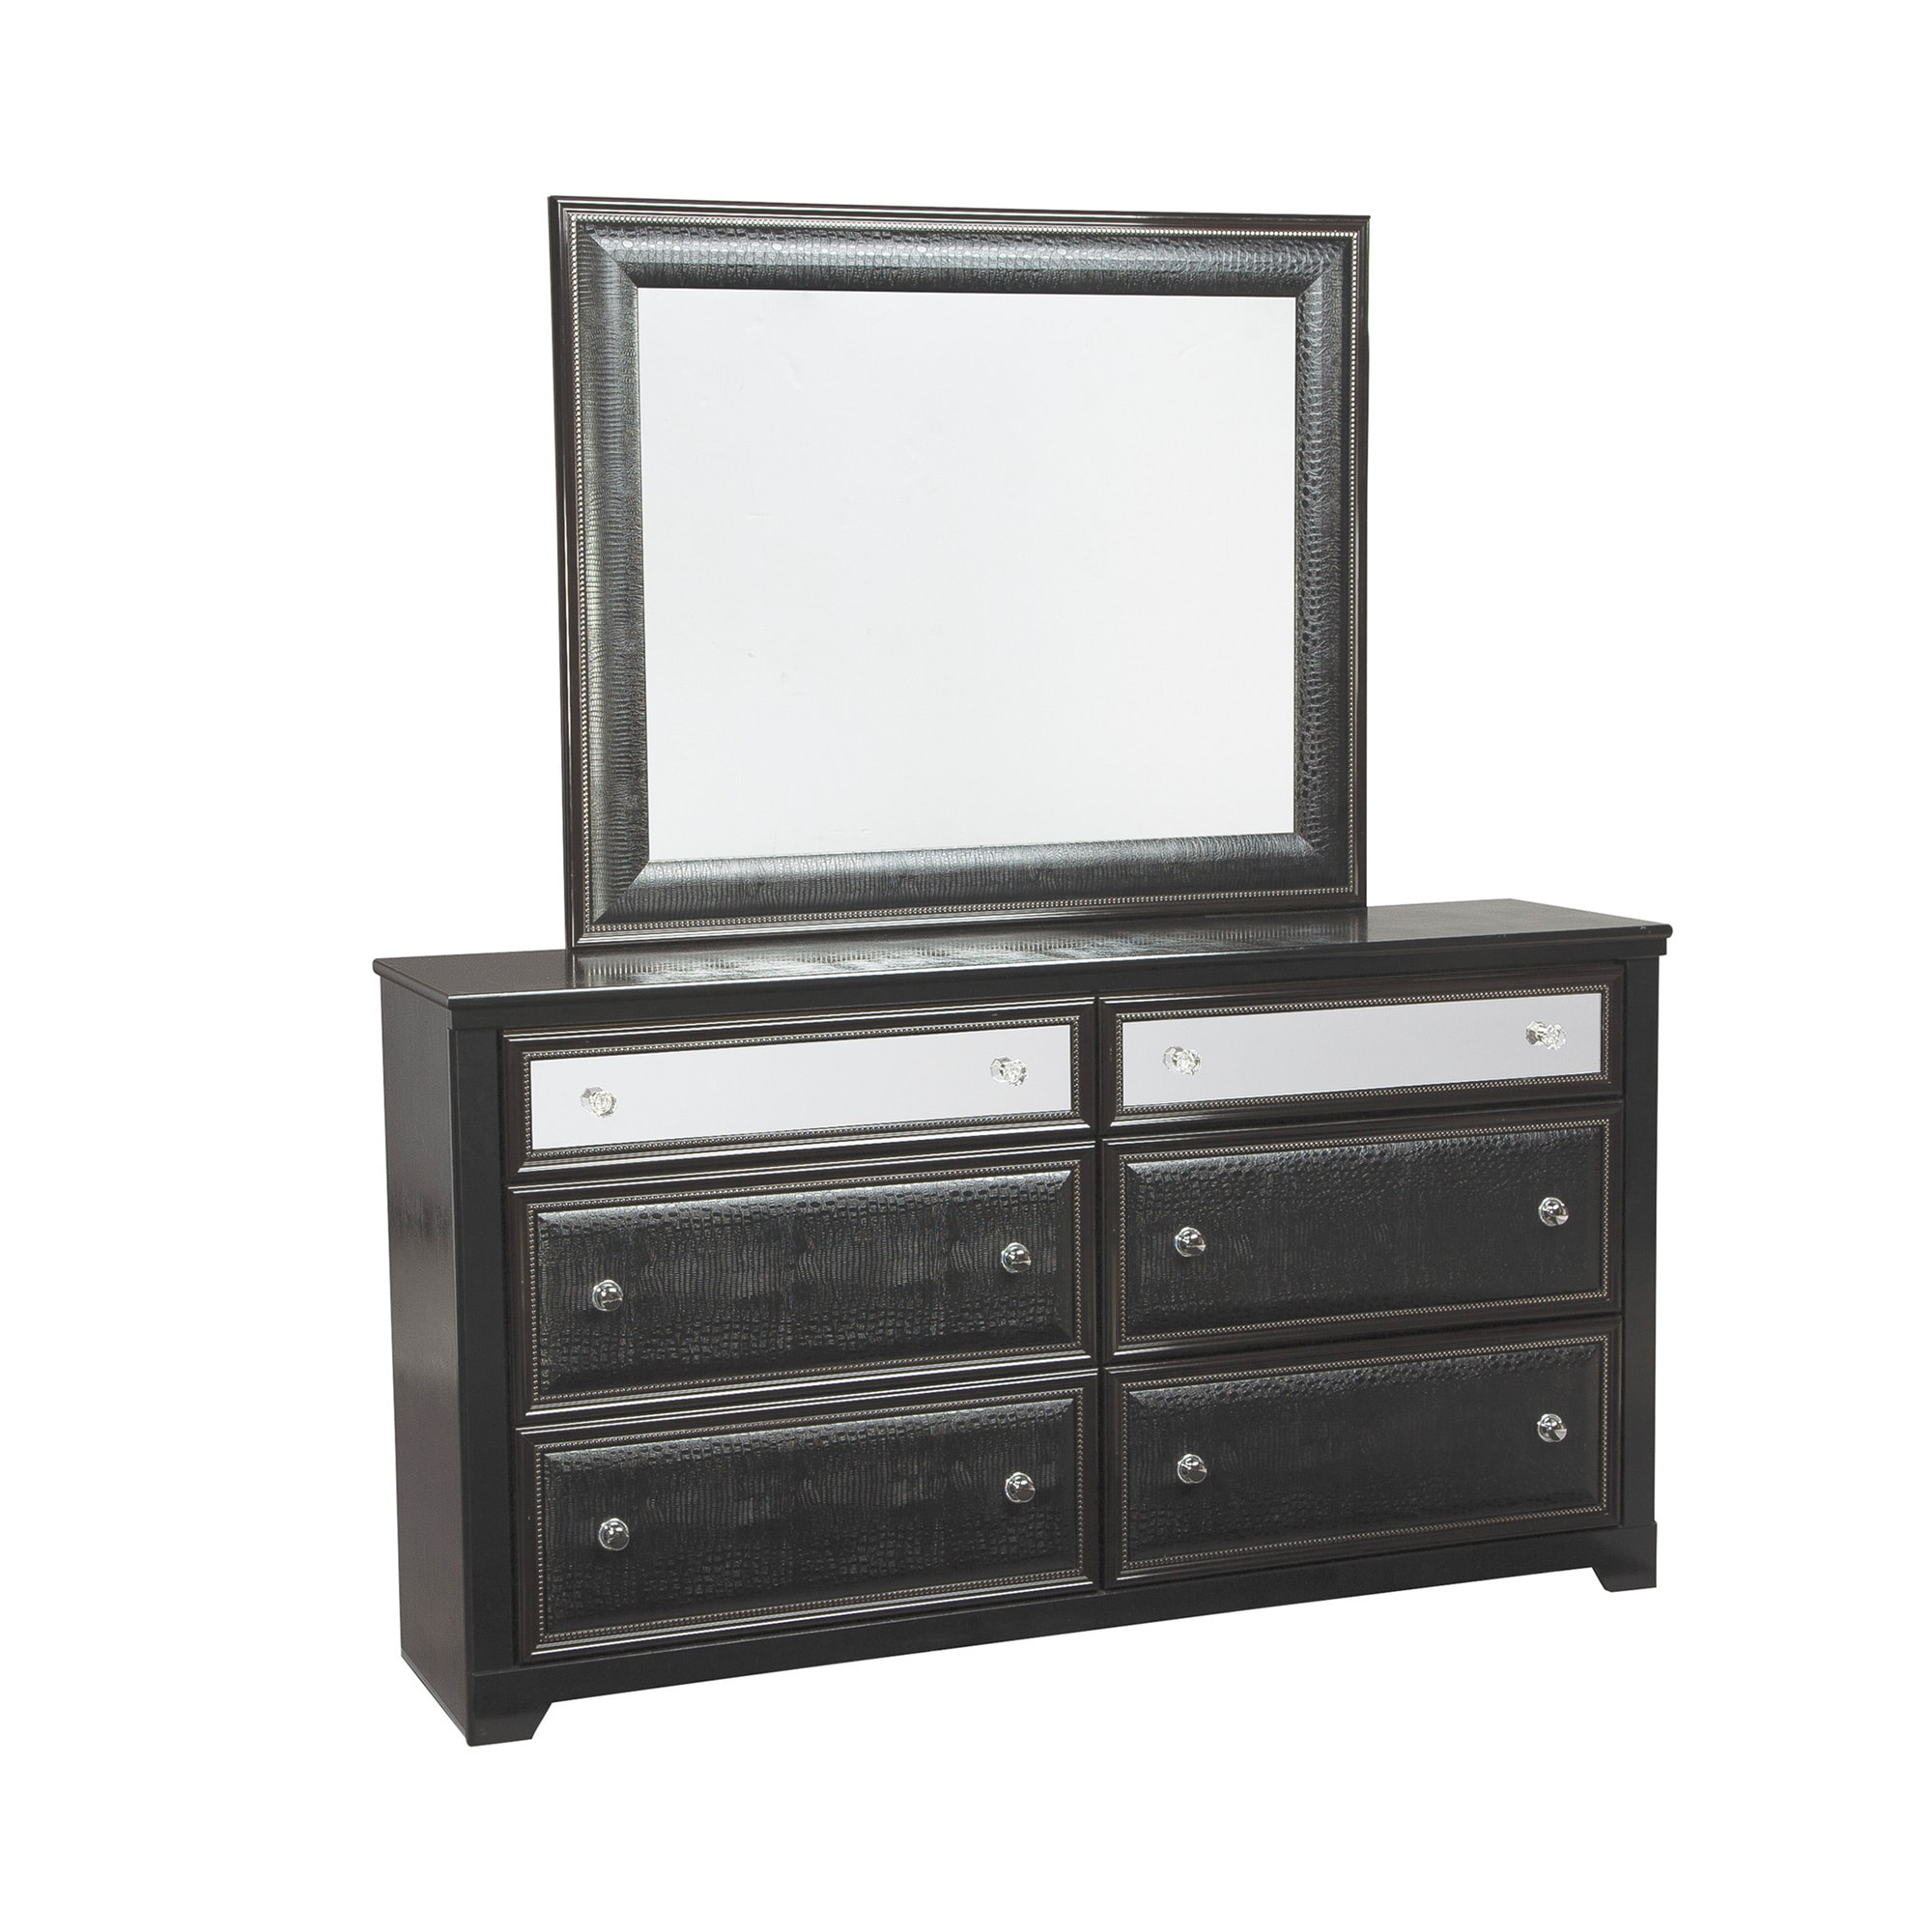 terrific bedroom dressers for media best mirrored chests decoration dresser black and